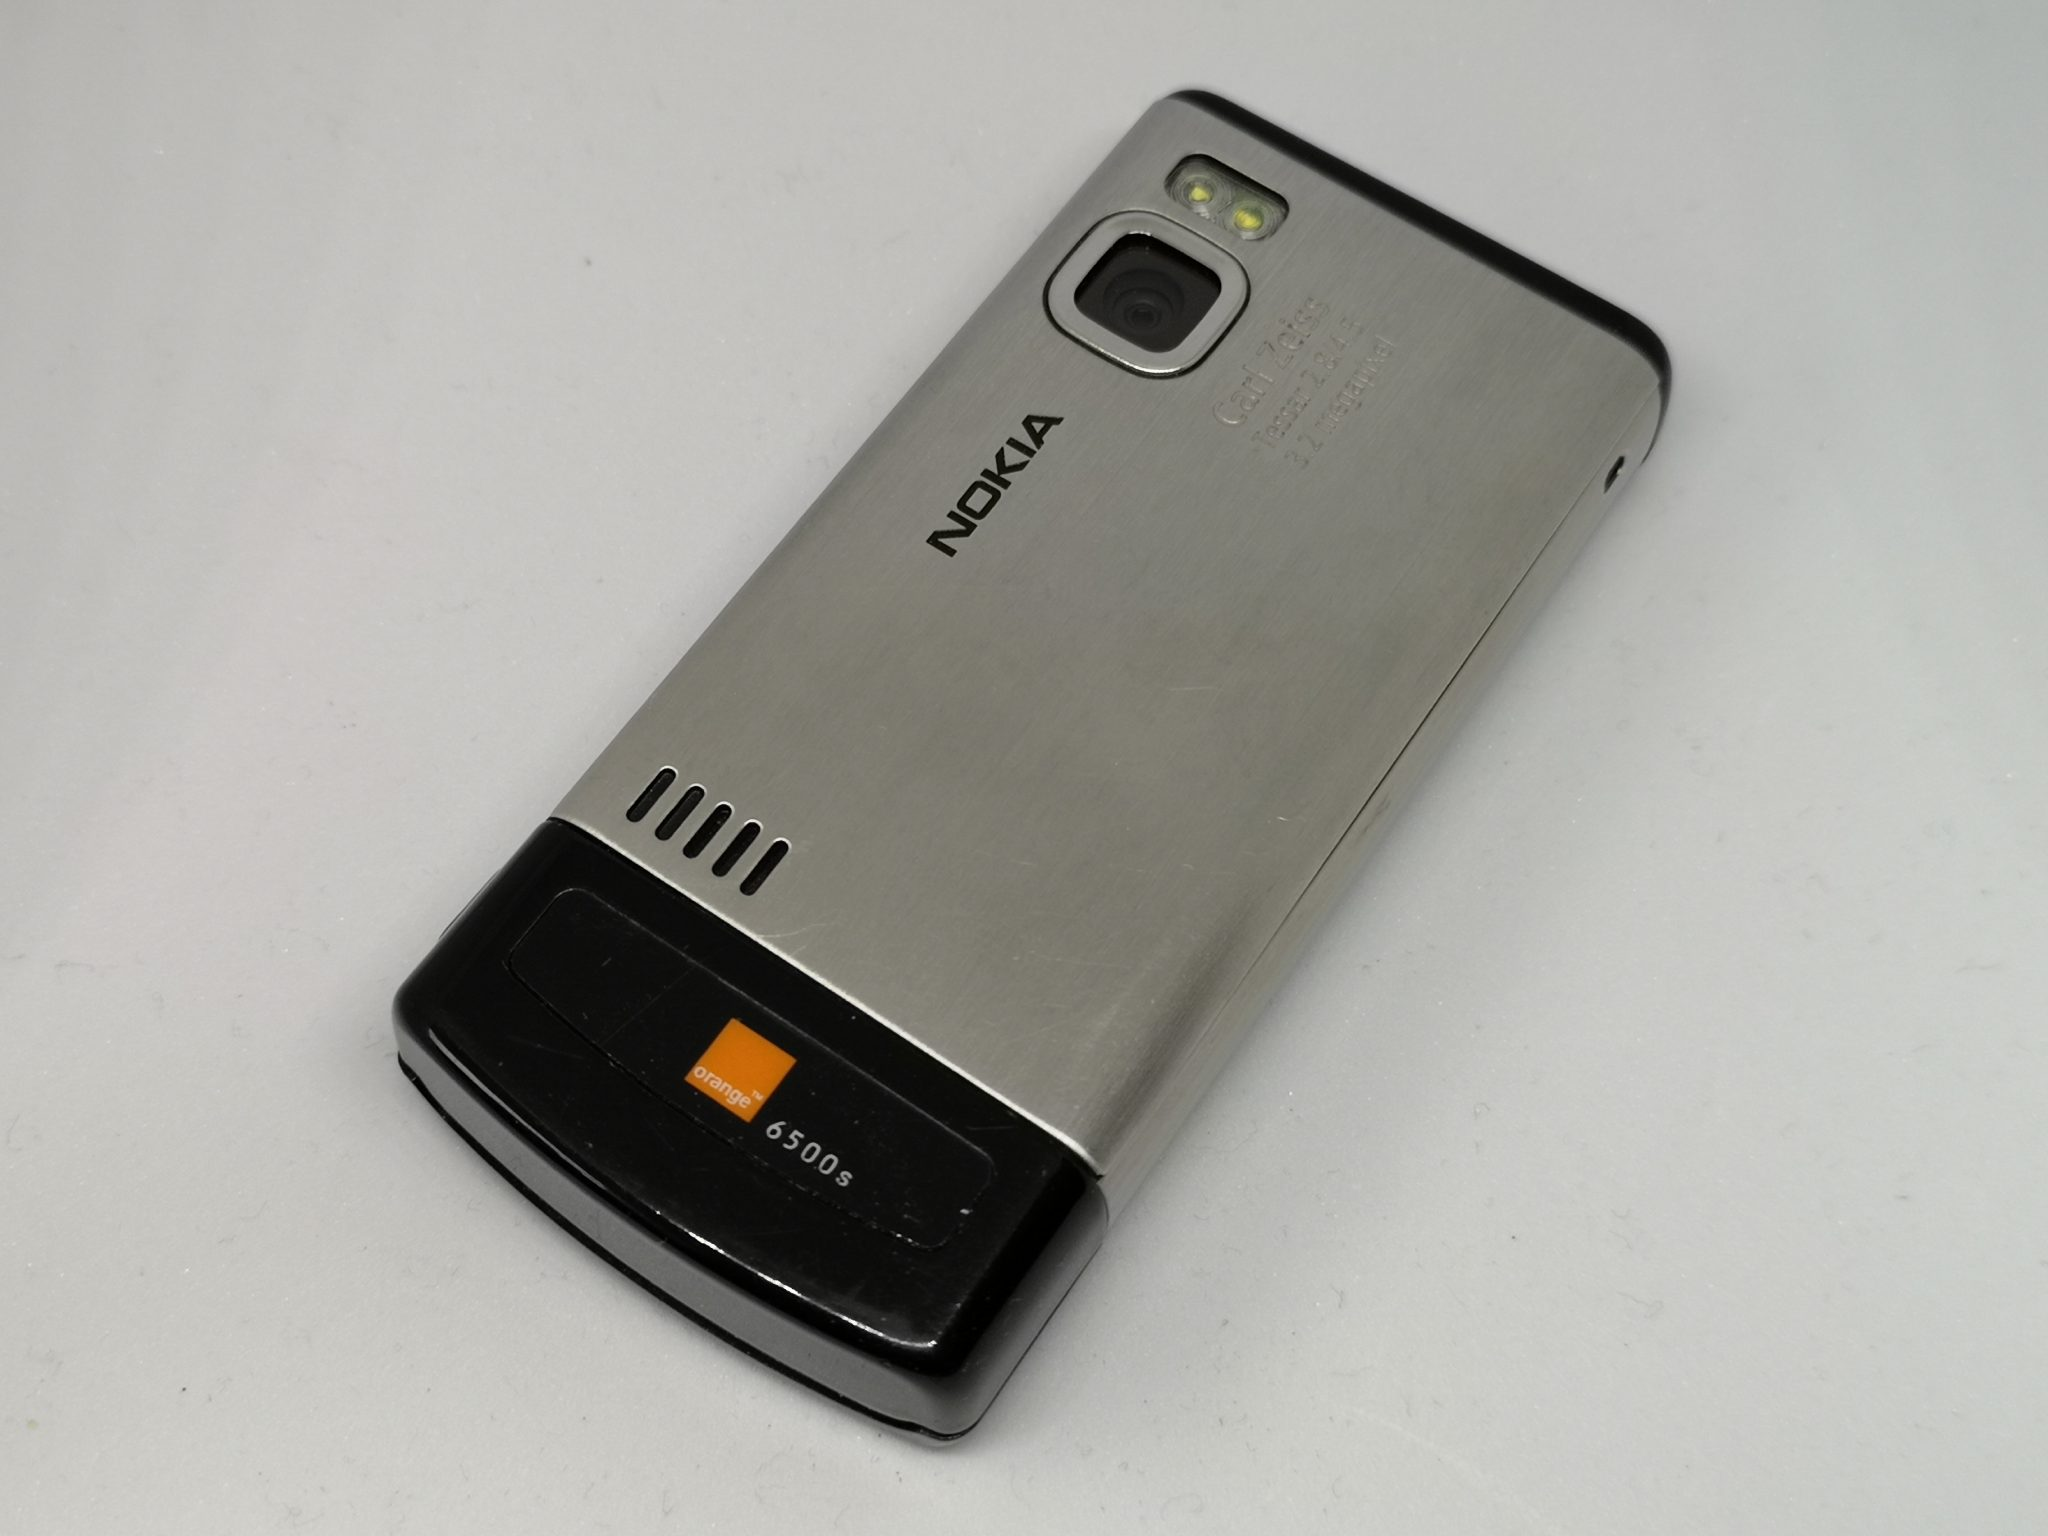 Nokia 6500 Slide Review - Mid-Range Powerful Mobile Phone